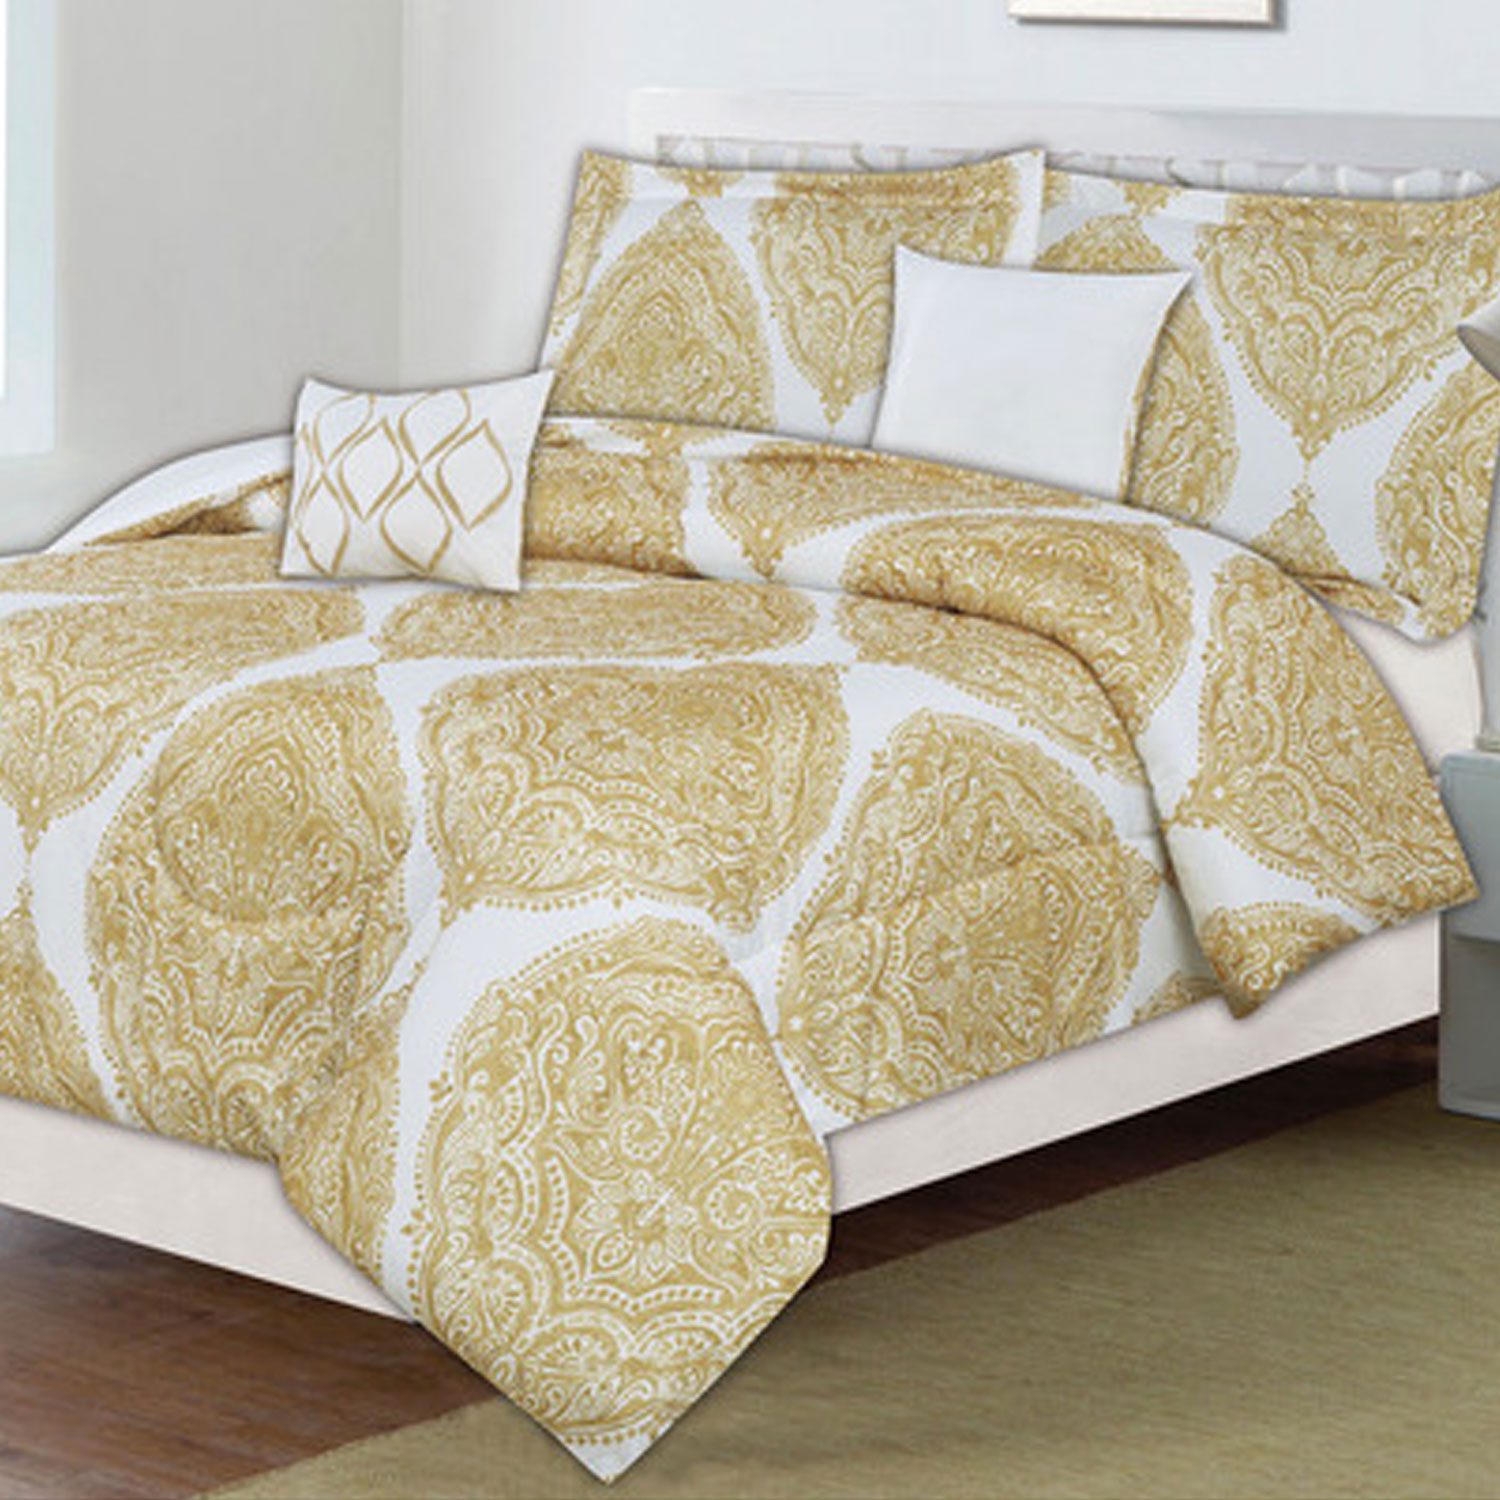 Classic Trends Comforter 5 - Piece Set - Golden Palace Yellow